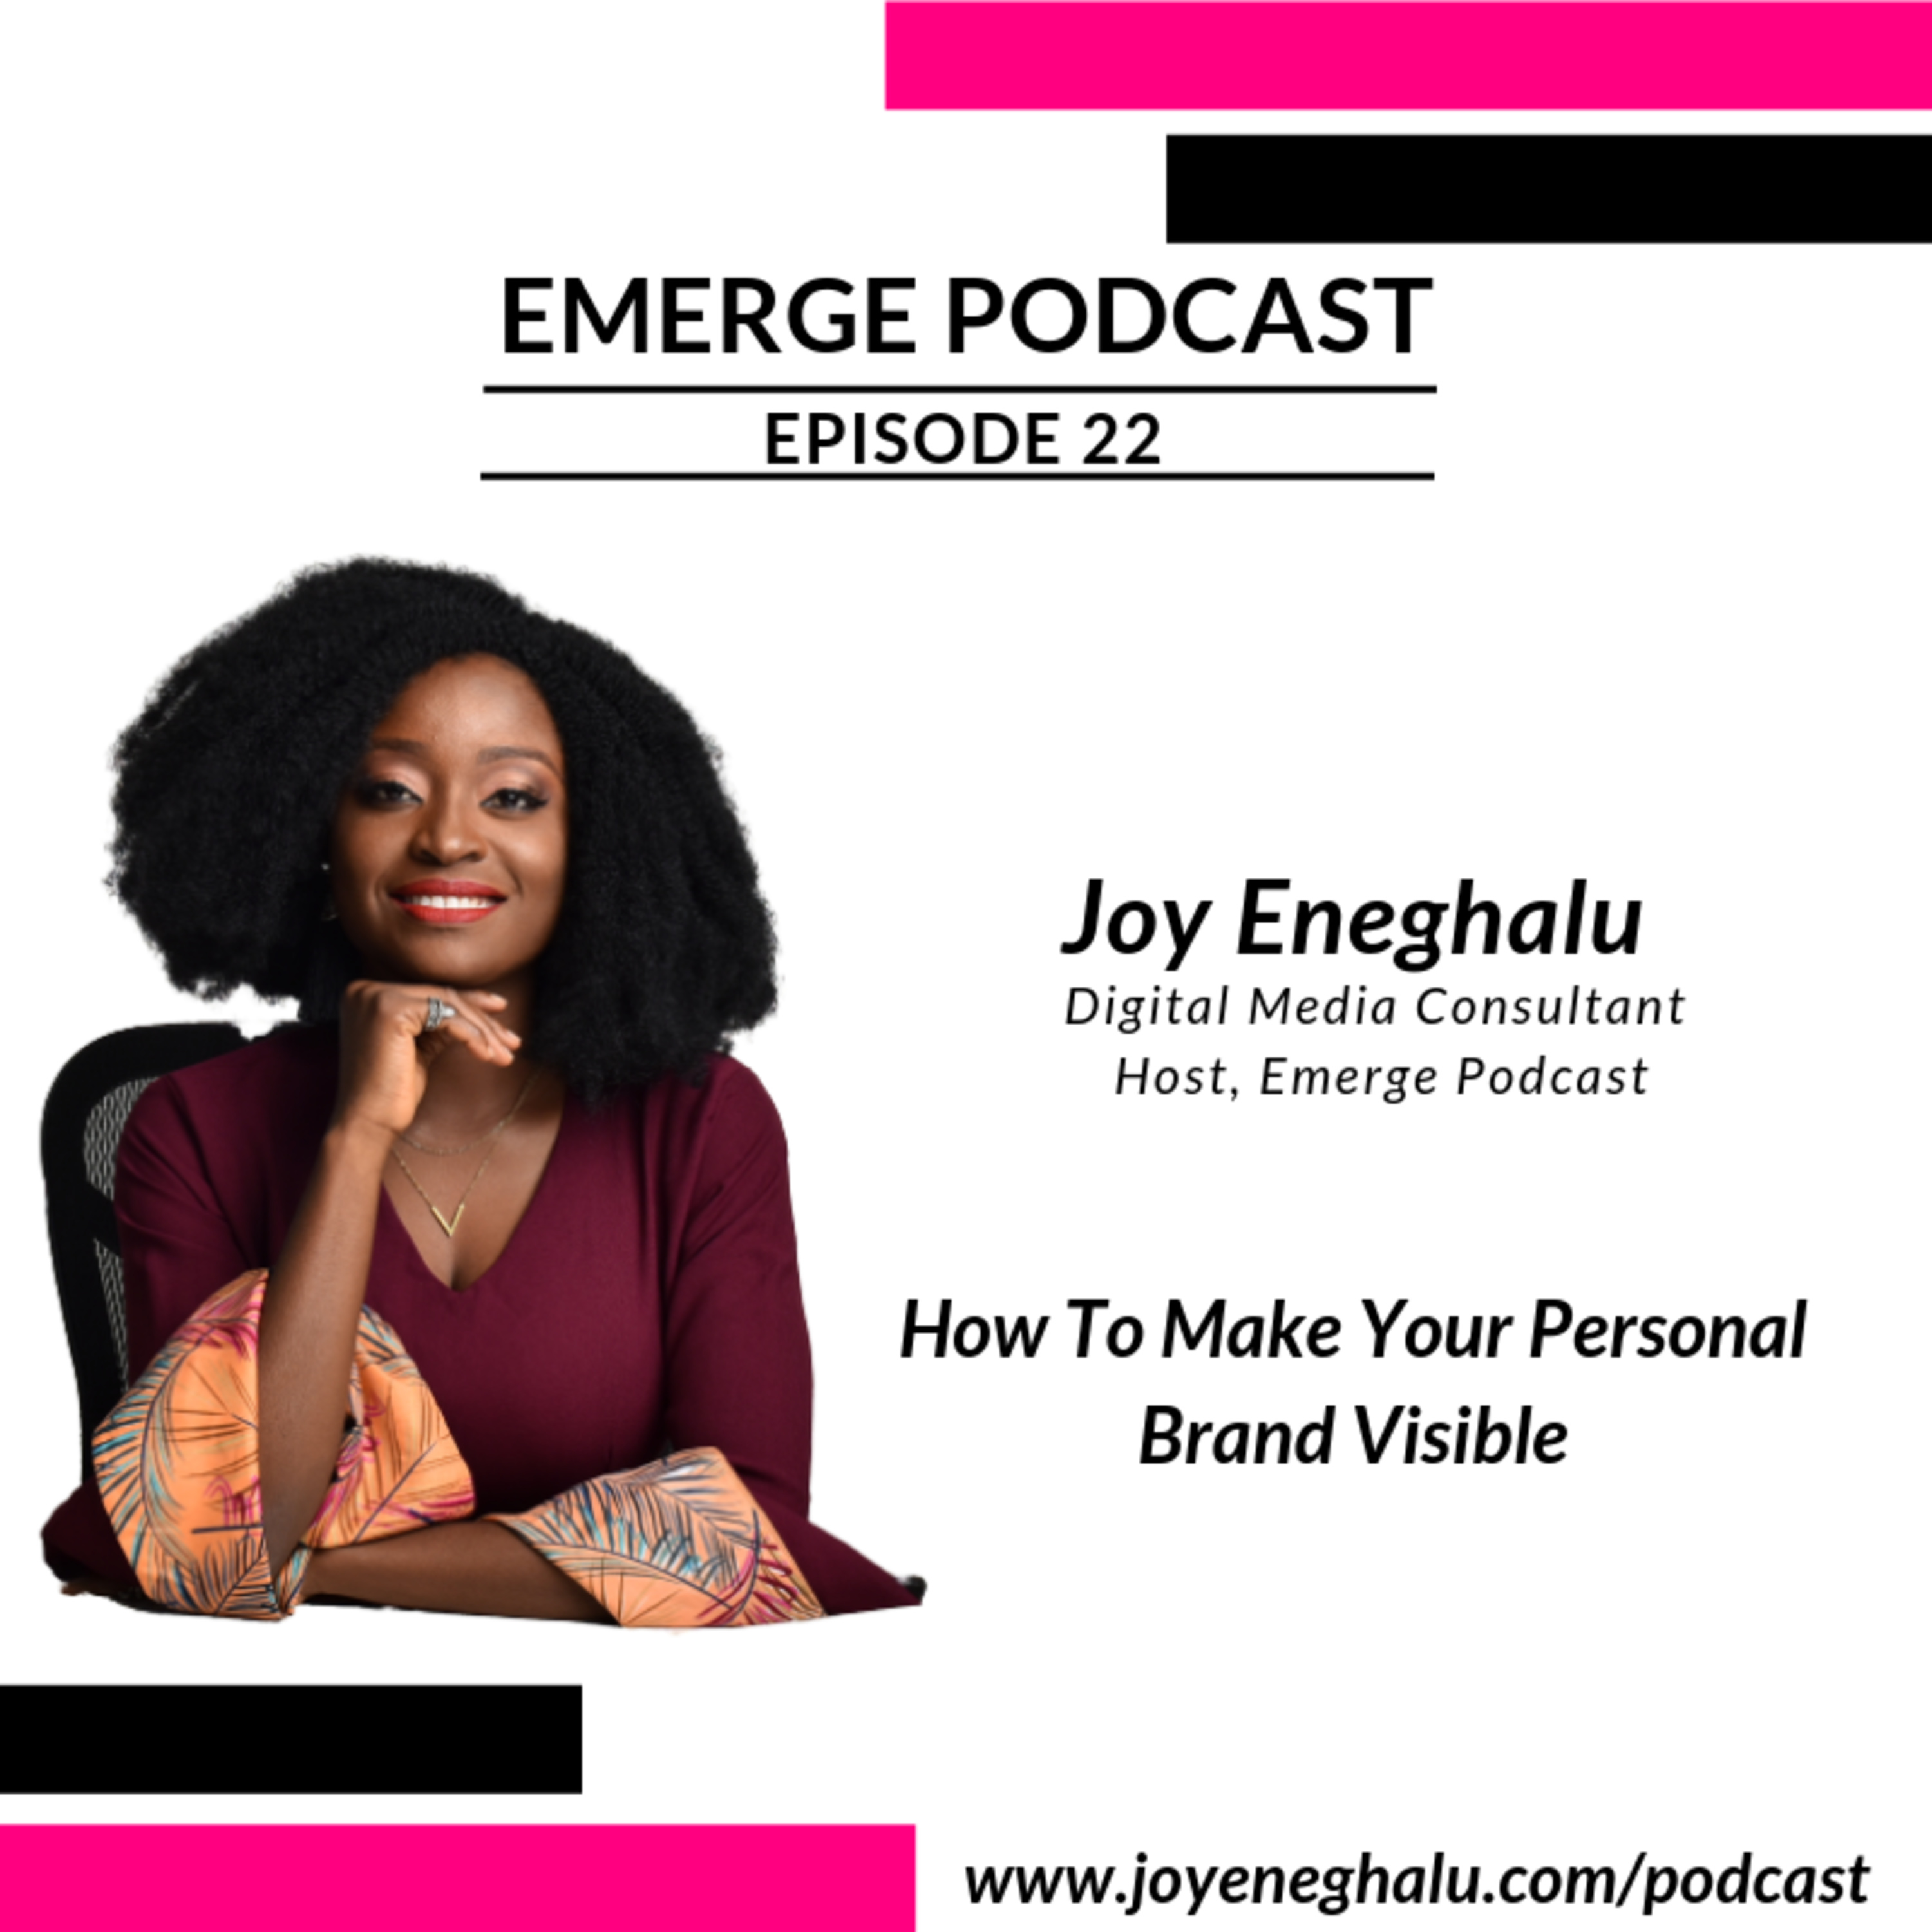 EP 22 - How To Make Your Personal Brand Visible